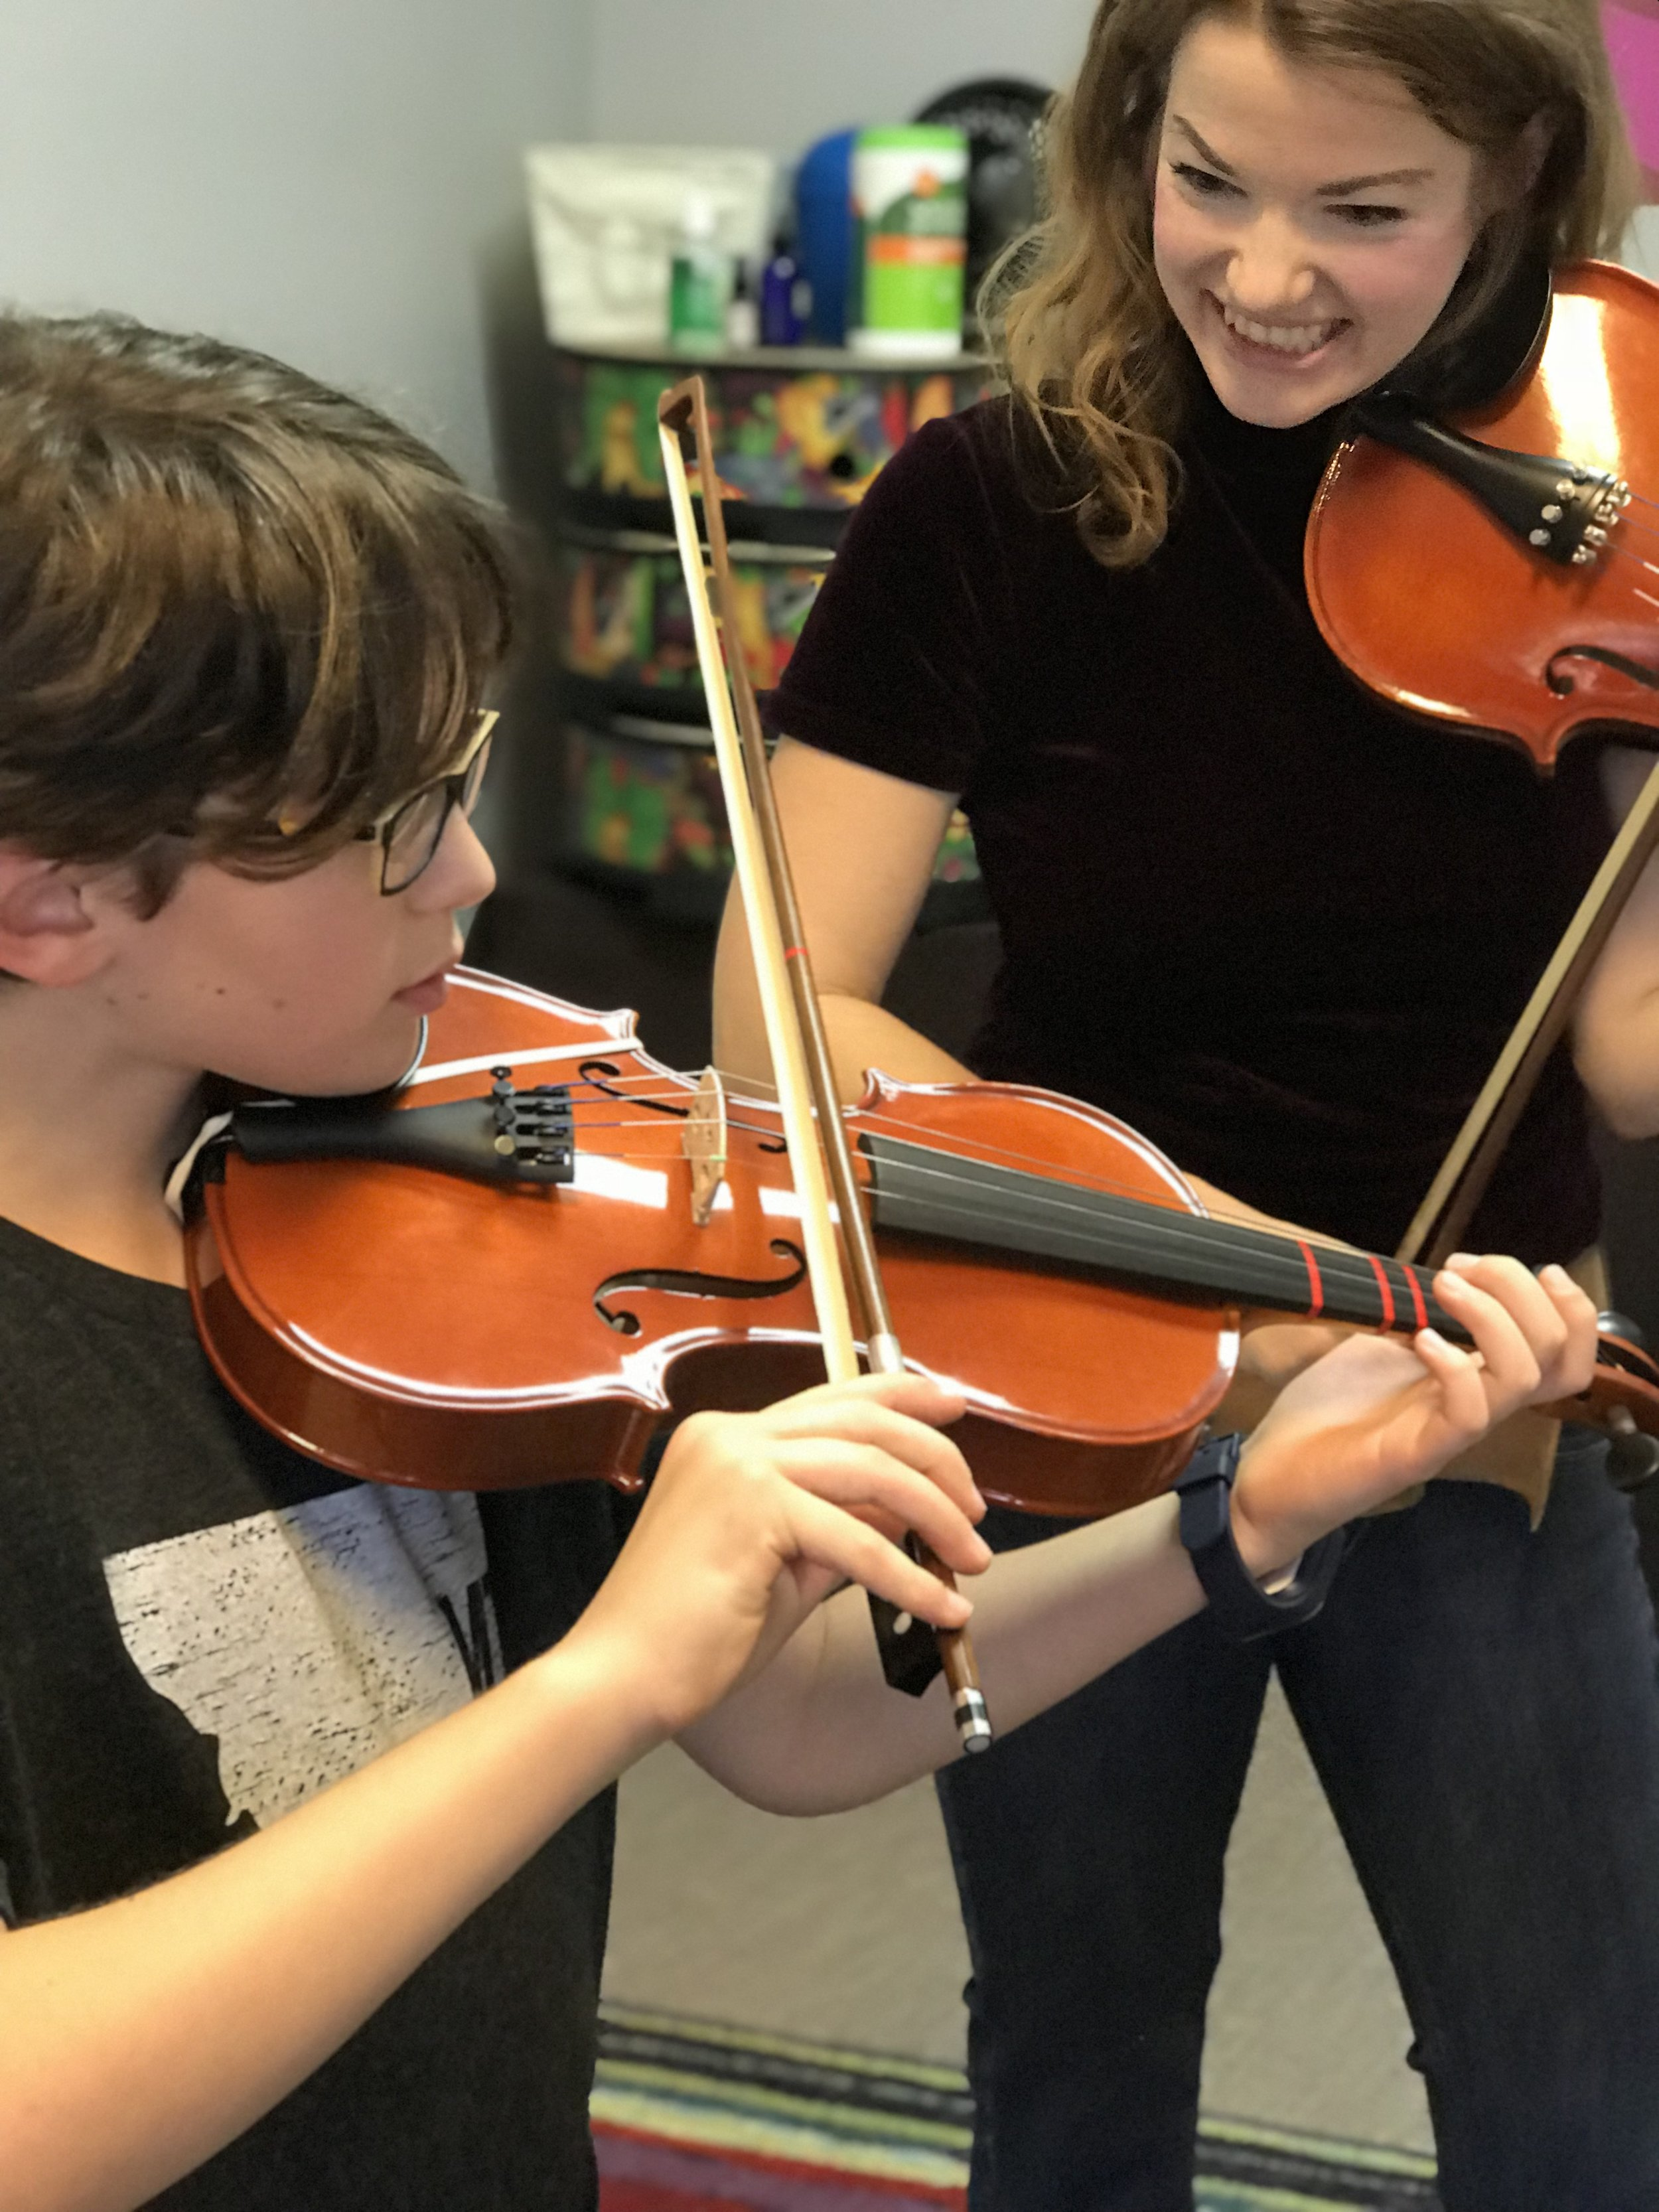 Music Lessons in Caldwell, West Orange, Livingston |The